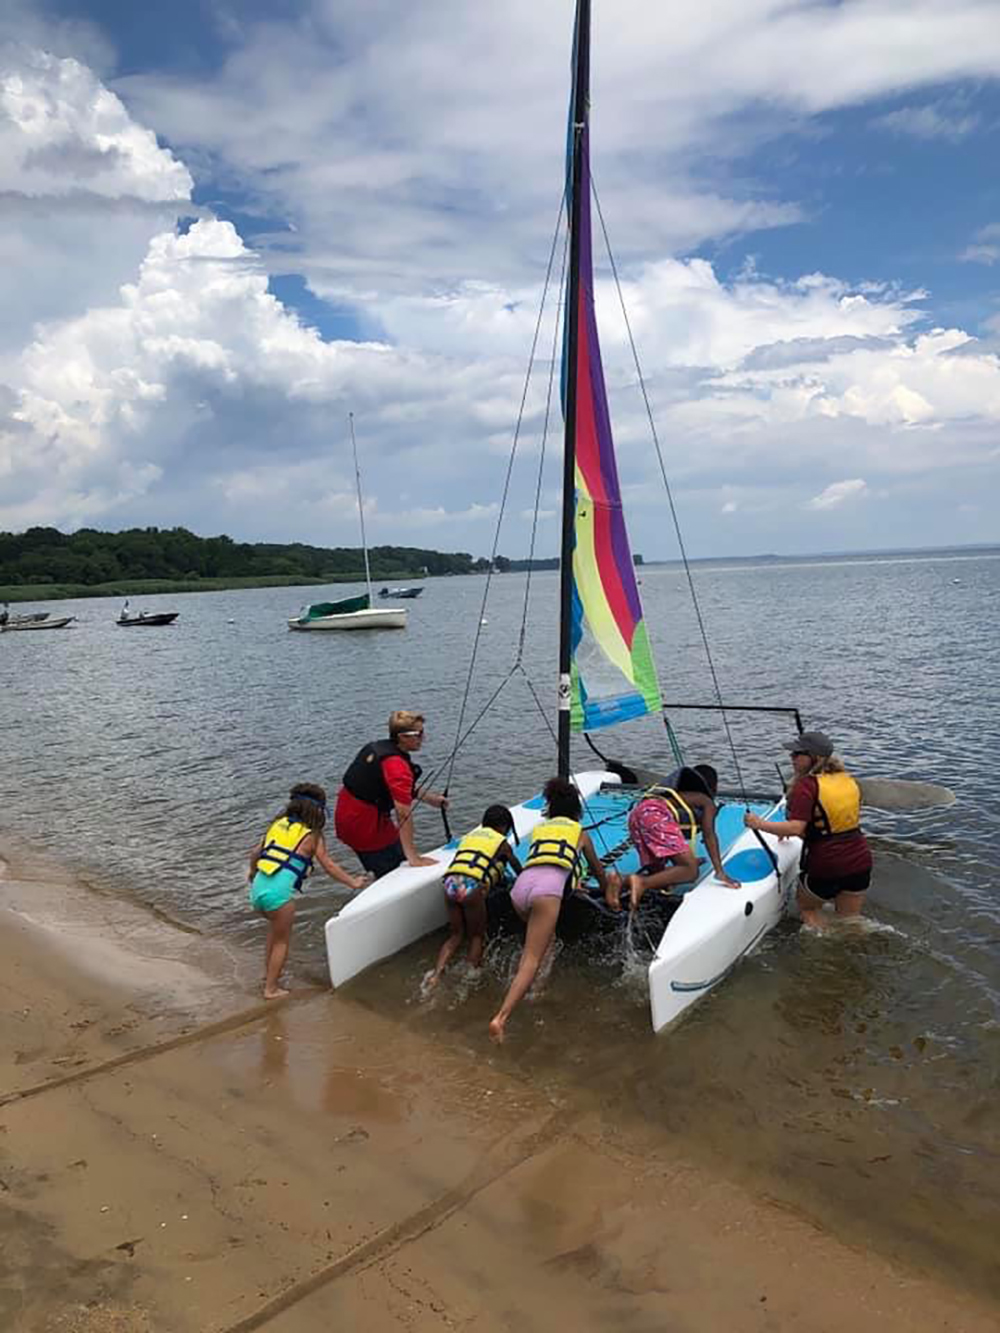 Students launching the catamaran with instructor guidance on the Chesapeake Bay. Photo credit: Baltimore County Sailing Center